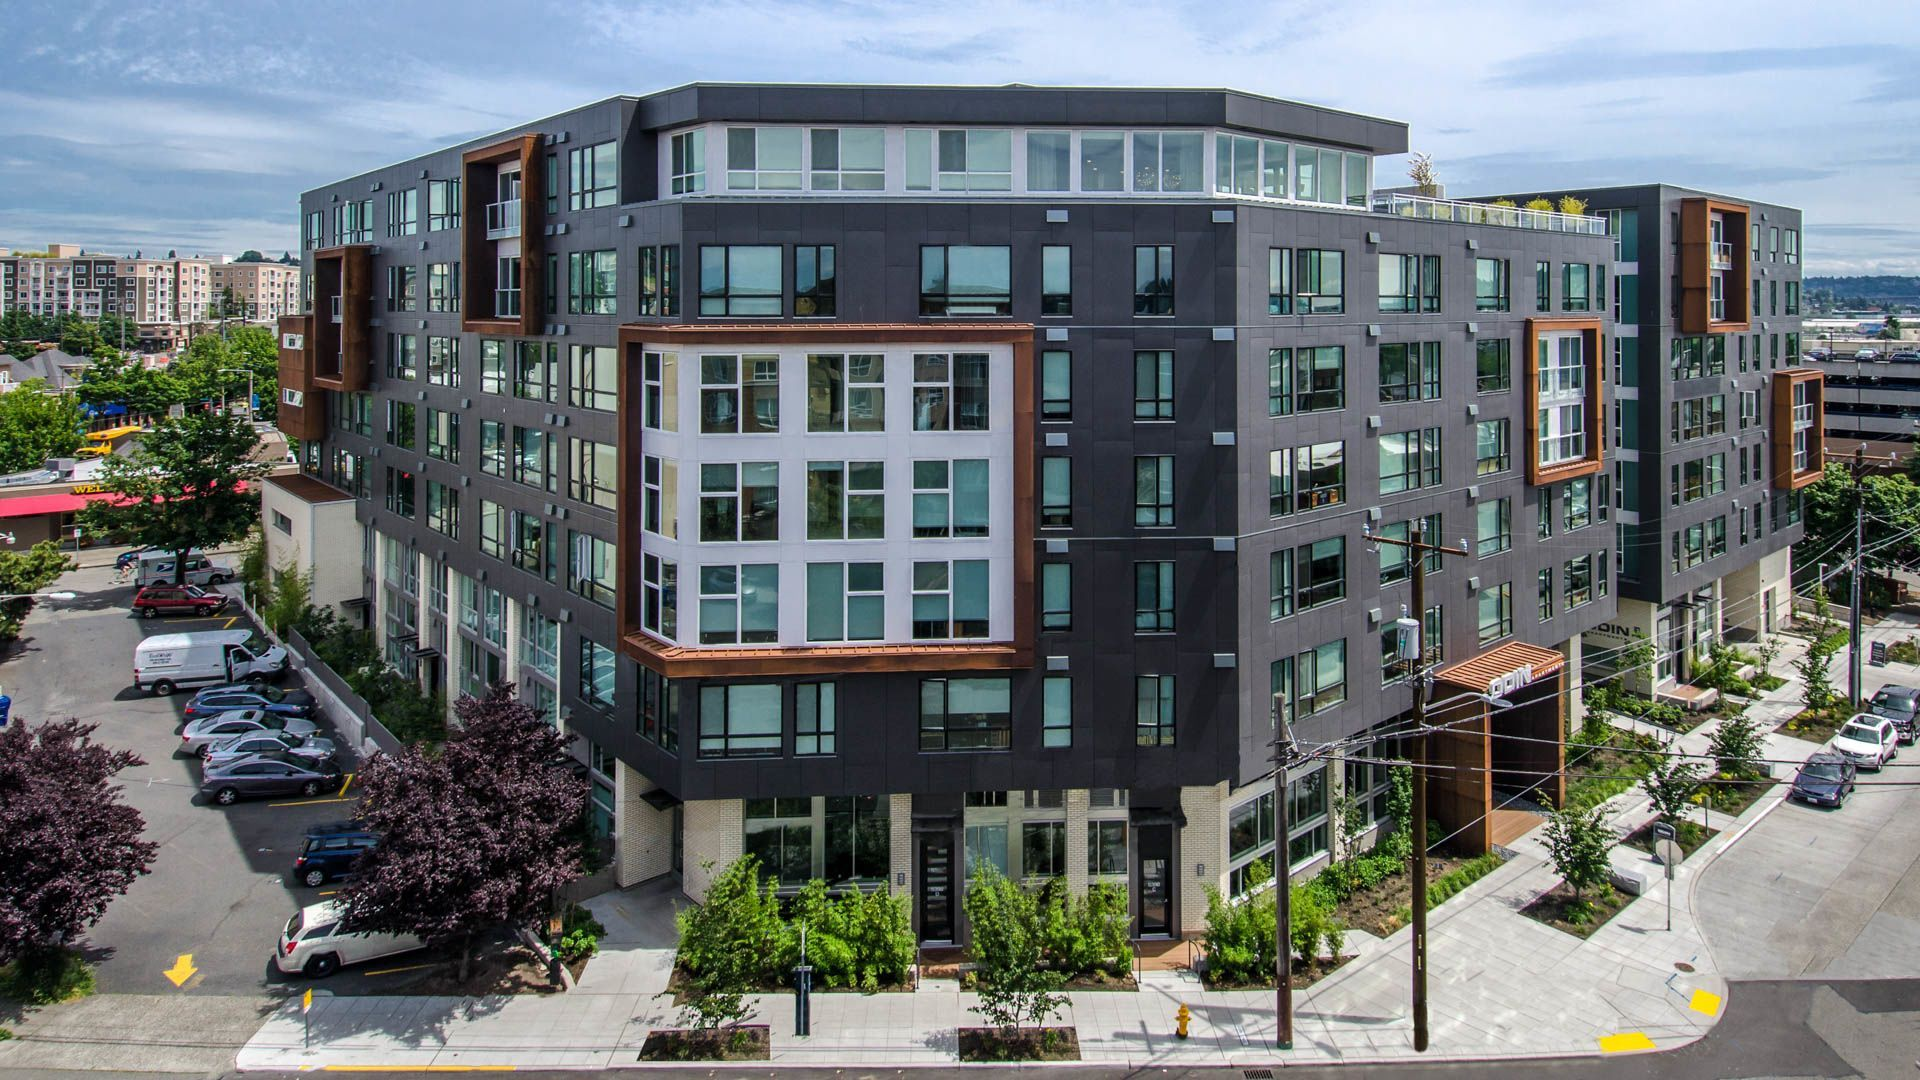 Image result for seattle apartments exterior Willard